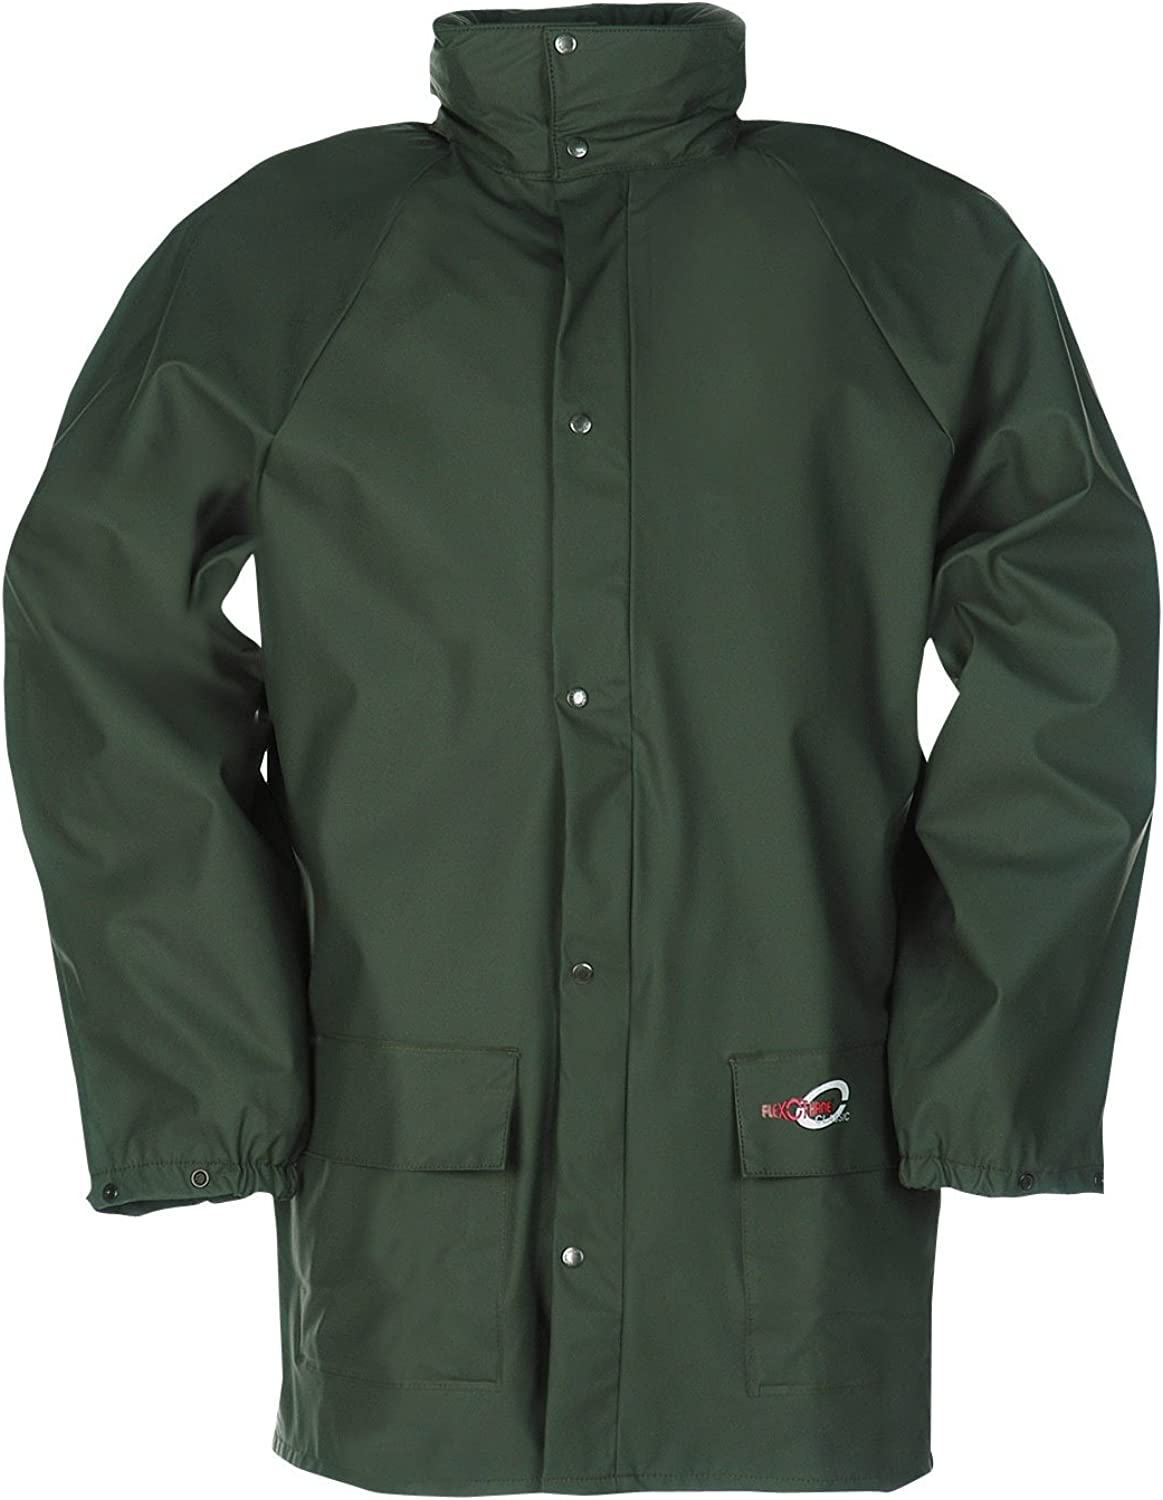 Flexothane Waterproof Jacket Size S-XXL